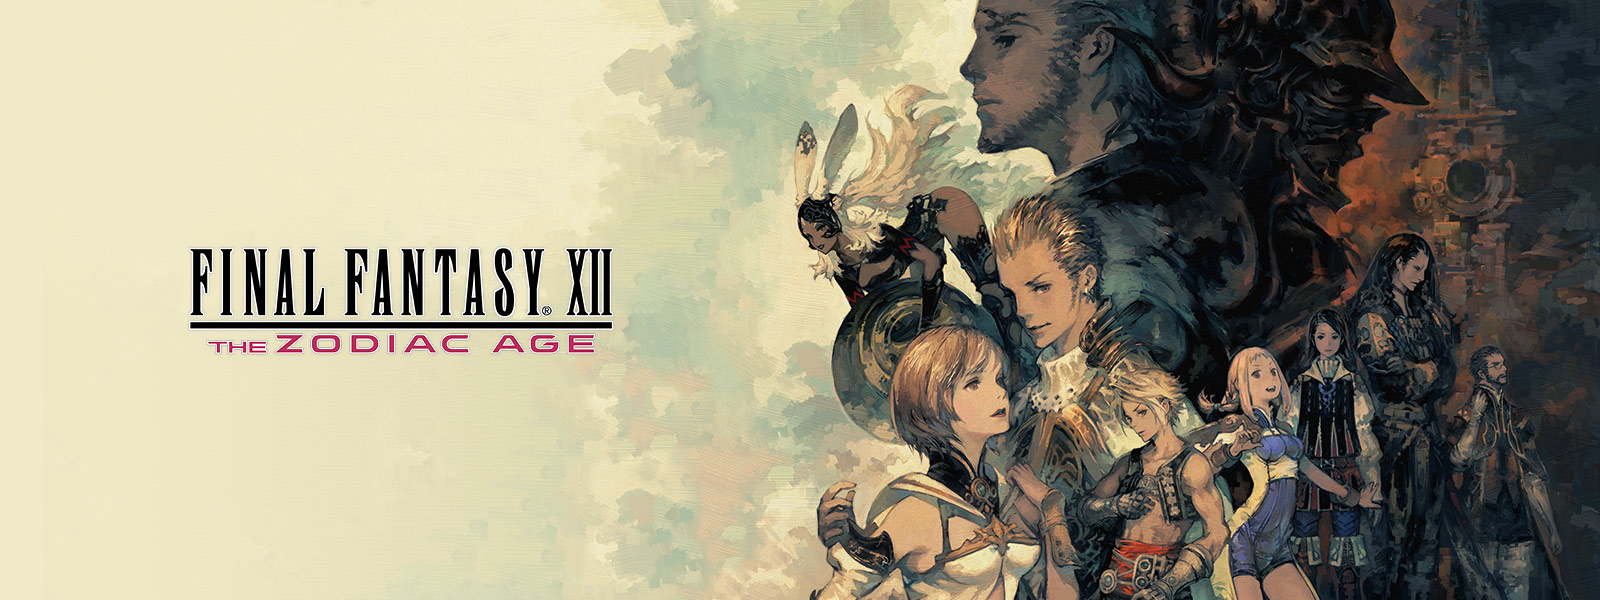 Montage de personnages de FINAL FANTASY XII THE ZODIAC AGE